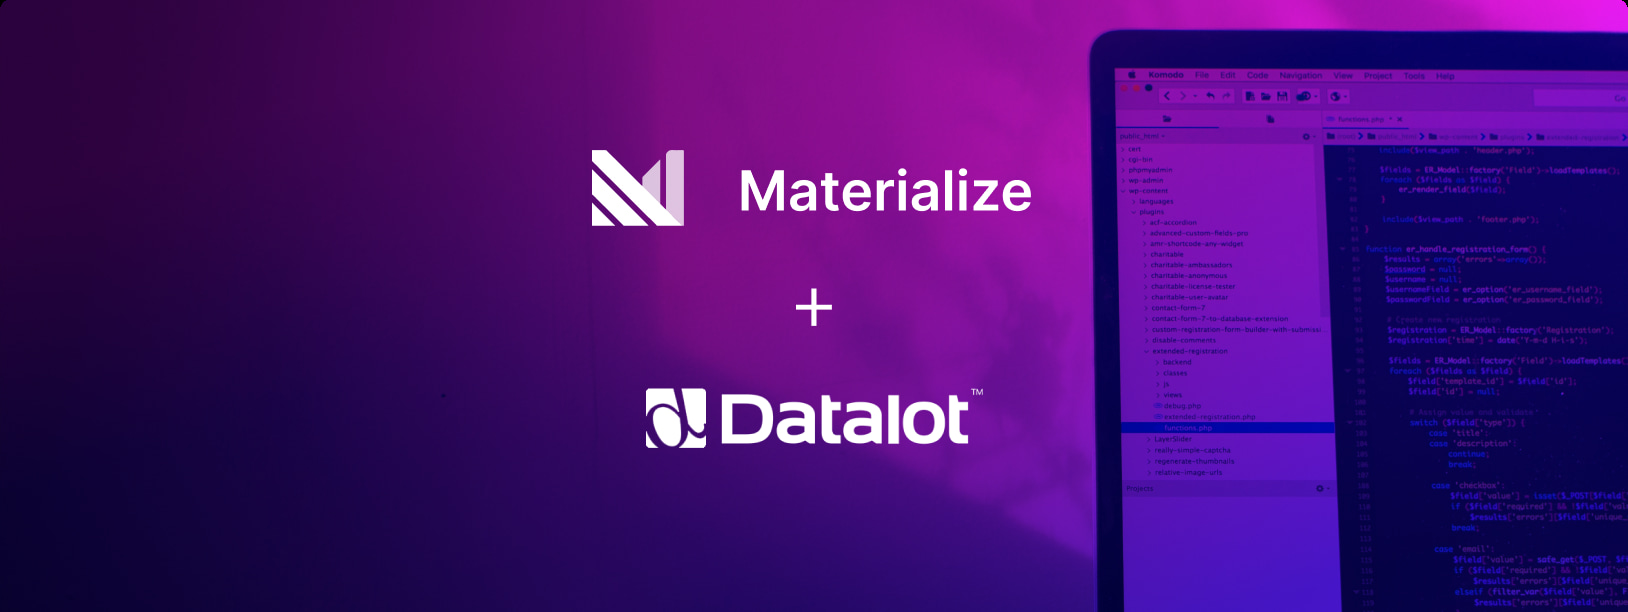 Materialize & Datalot: Real-time Application Development